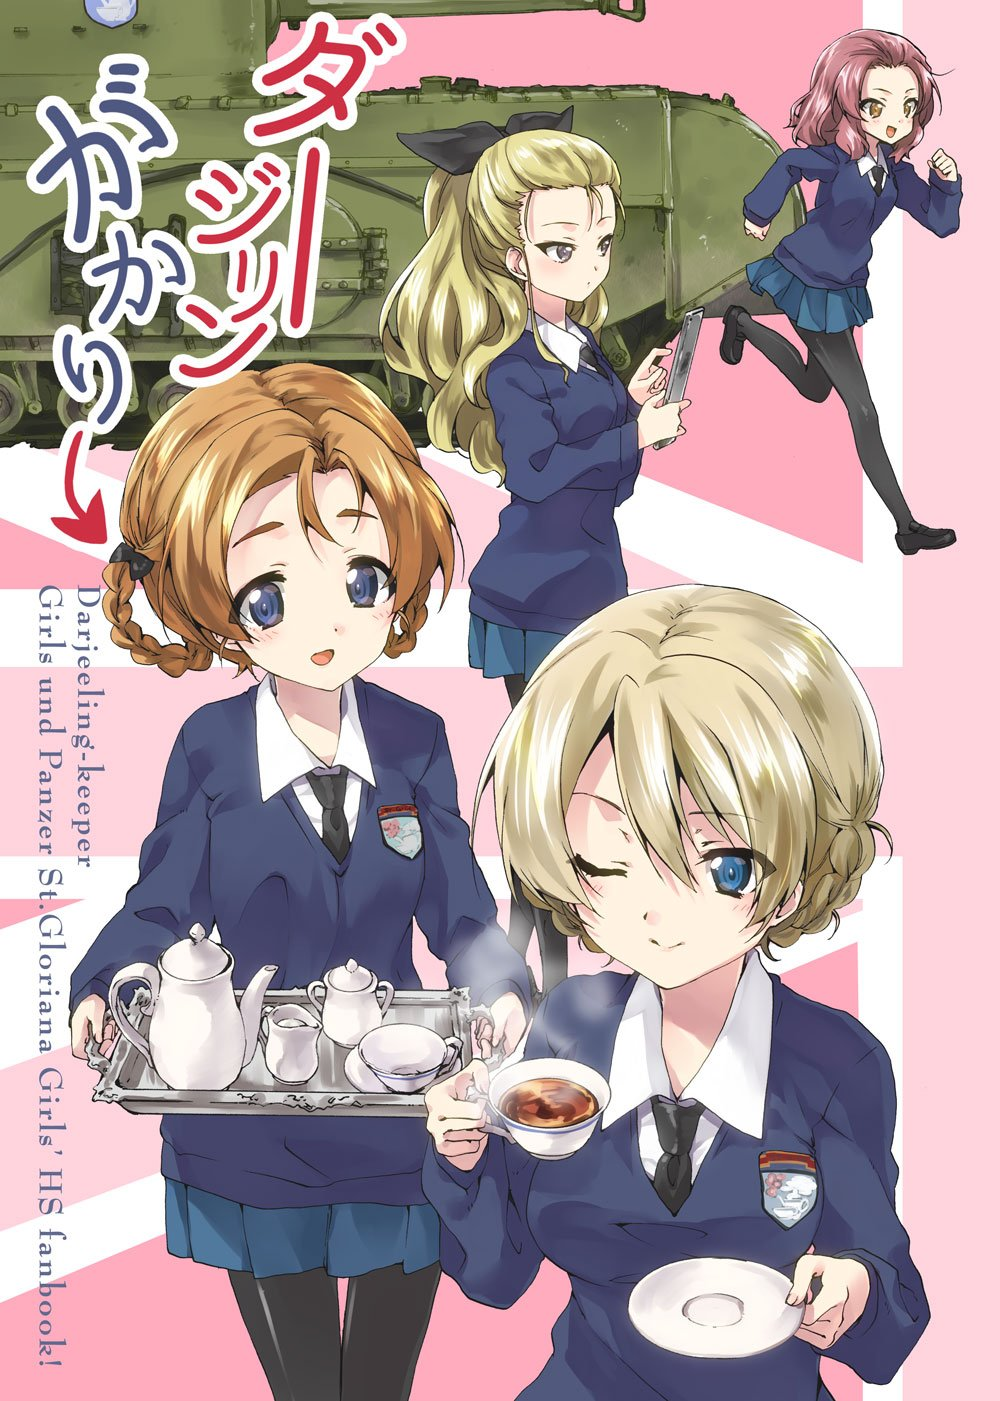 ;) assam bangs black_bow black_footwear black_legwear black_neckwear black_ribbon blonde_hair blue_eyes blue_skirt blue_sweater bow braid brown_eyes character_name churchill_(tank) closed_mouth commentary_request copyright_name cover cover_page cup darjeeling doujin_cover dress_shirt emblem girls_und_panzer ground_vehicle hair_bow hair_pulled_back hair_ribbon highres holding holding_cup holding_saucer holding_tablet_pc holding_tray kuroi_mimei light_blush loafers long_hair long_sleeves looking_at_another looking_back medium_hair military military_vehicle miniskirt motor_vehicle necktie one_eye_closed open_mouth orange_hair orange_pekoe pantyhose parted_bangs pleated_skirt redhead ribbon rosehip running saucer school_uniform shirt shoes short_hair skirt smile st._gloriana's_(emblem) st._gloriana's_school_uniform standing steam sweater tank teacup teapot tied_hair translation_request tray twin_braids v-neck white_shirt wing_collar